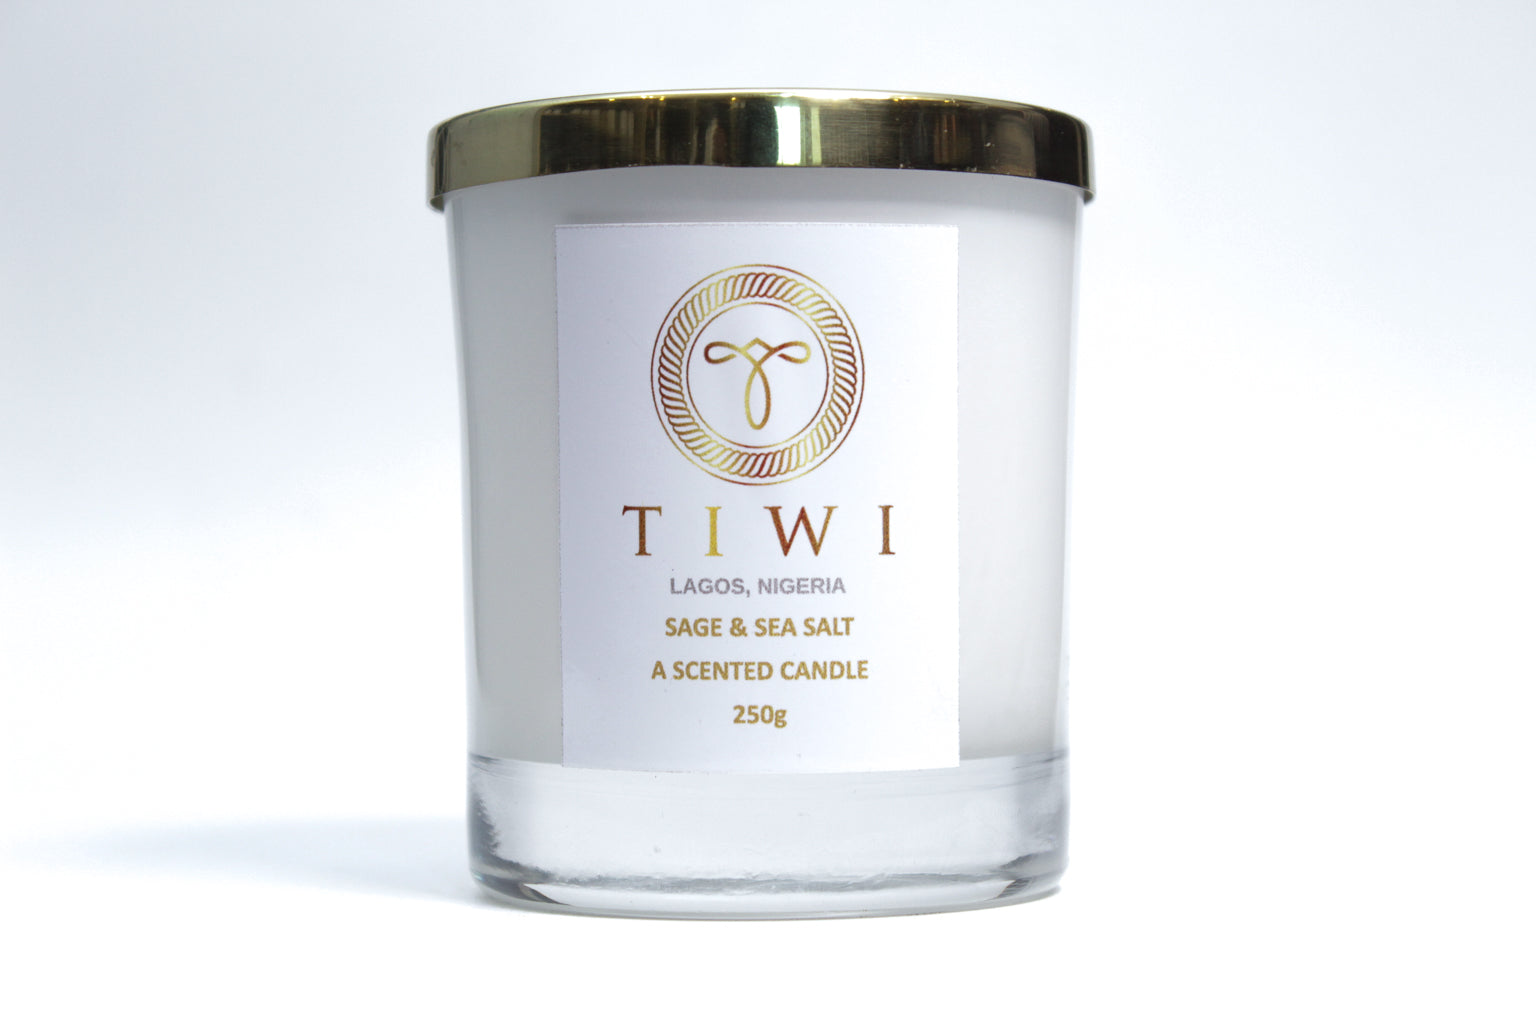 TIWI Sage & Sea Salt - A Scented Candle